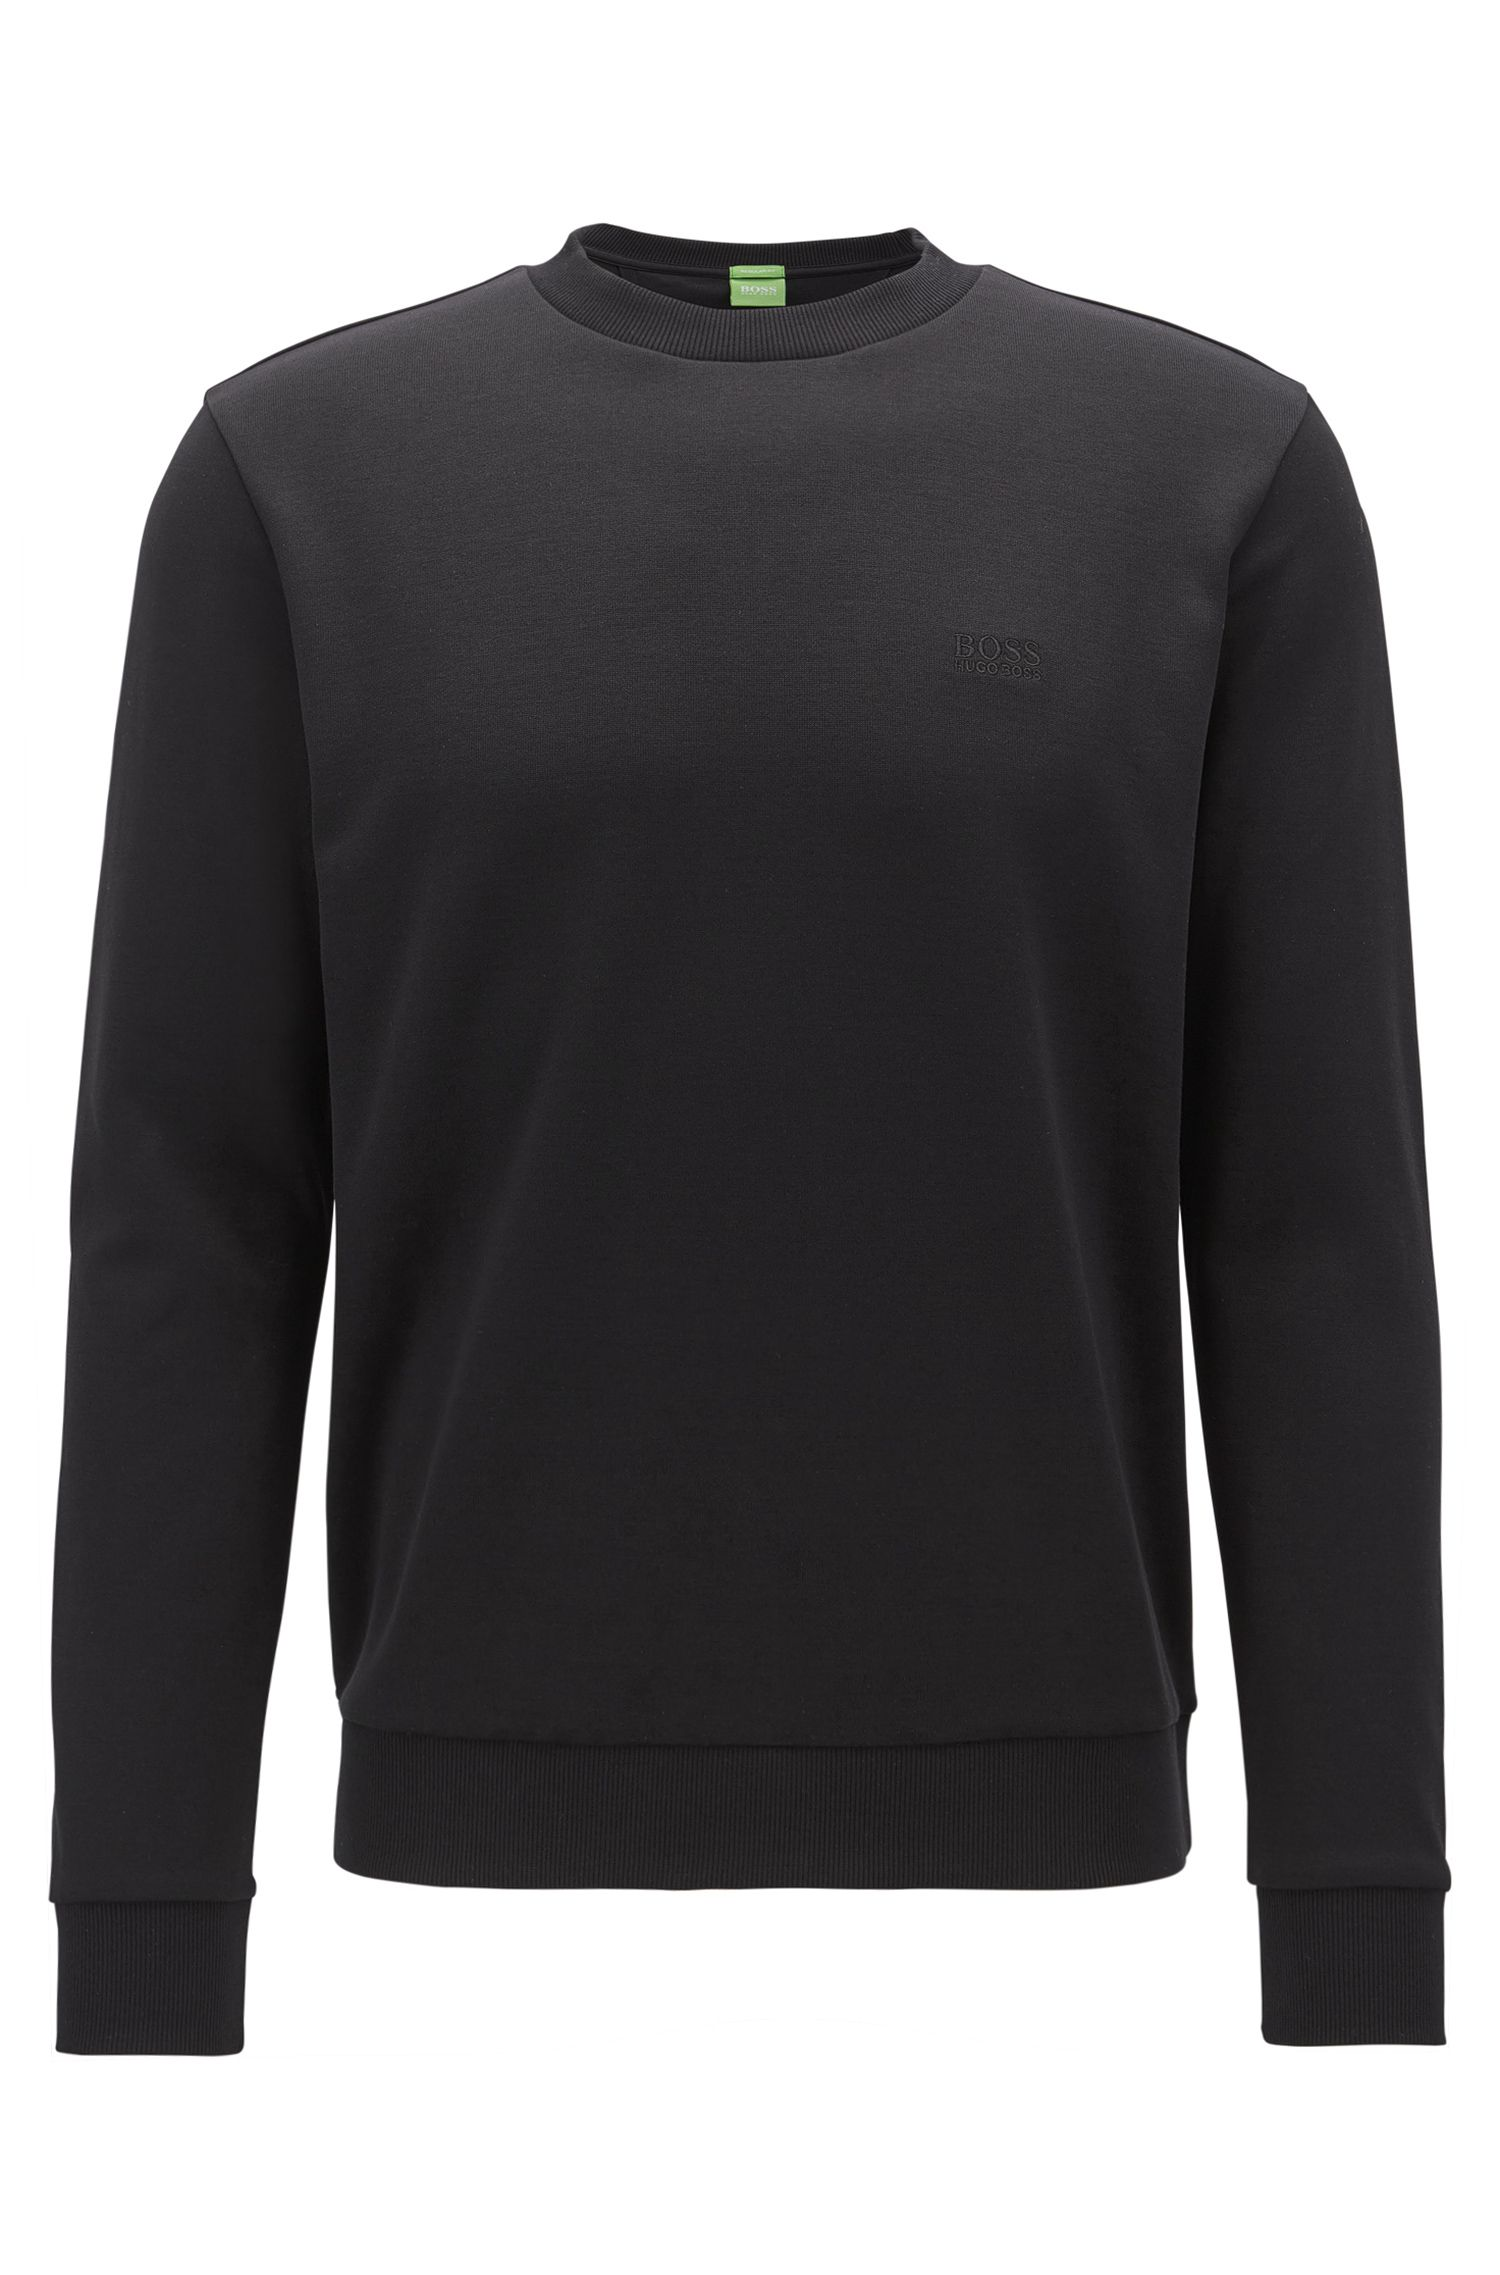 Crew-neck sweatshirt with logo embroidery, Black